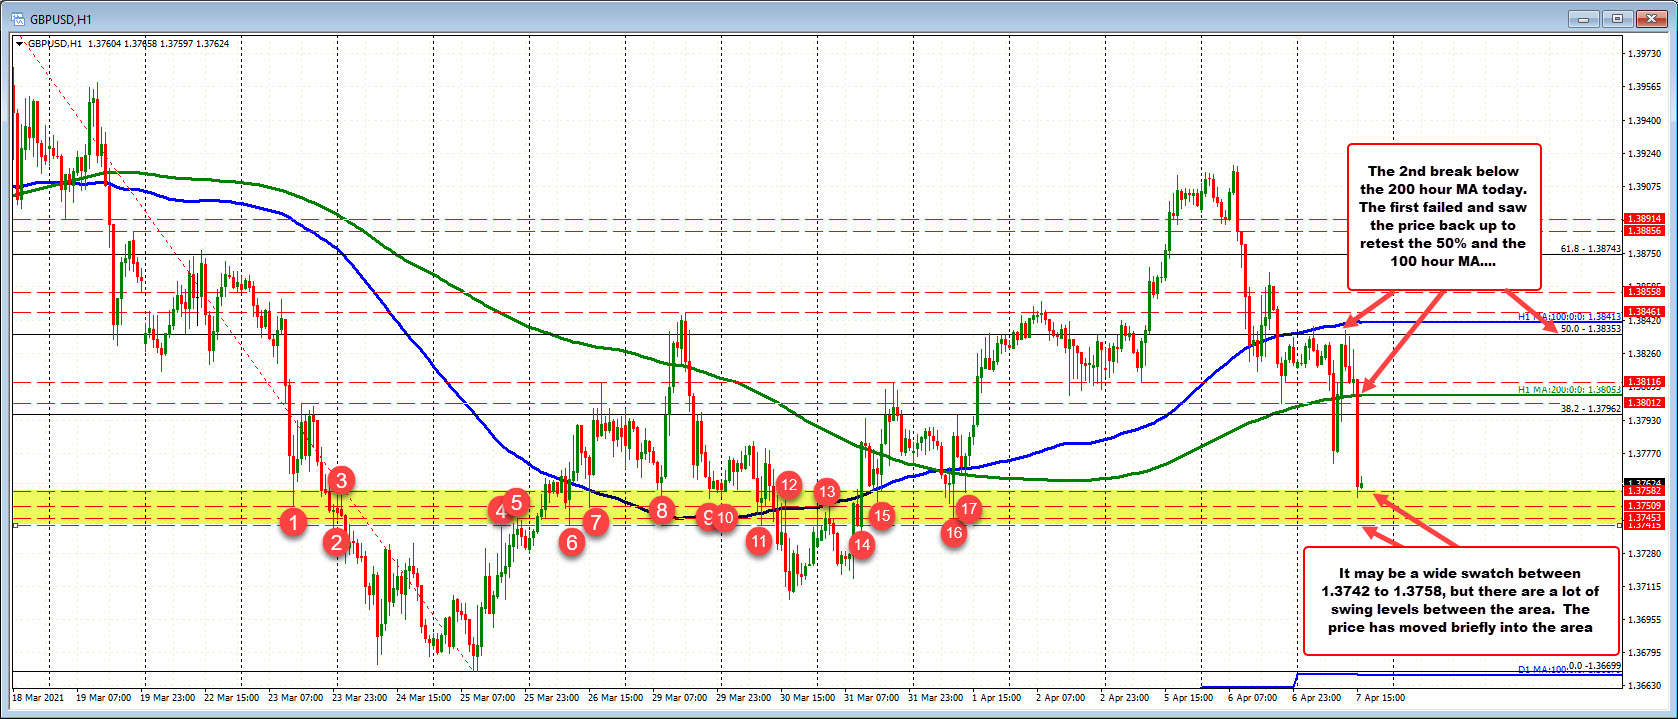 Cracks below 200 hour MA and runs for the 2nd time today.